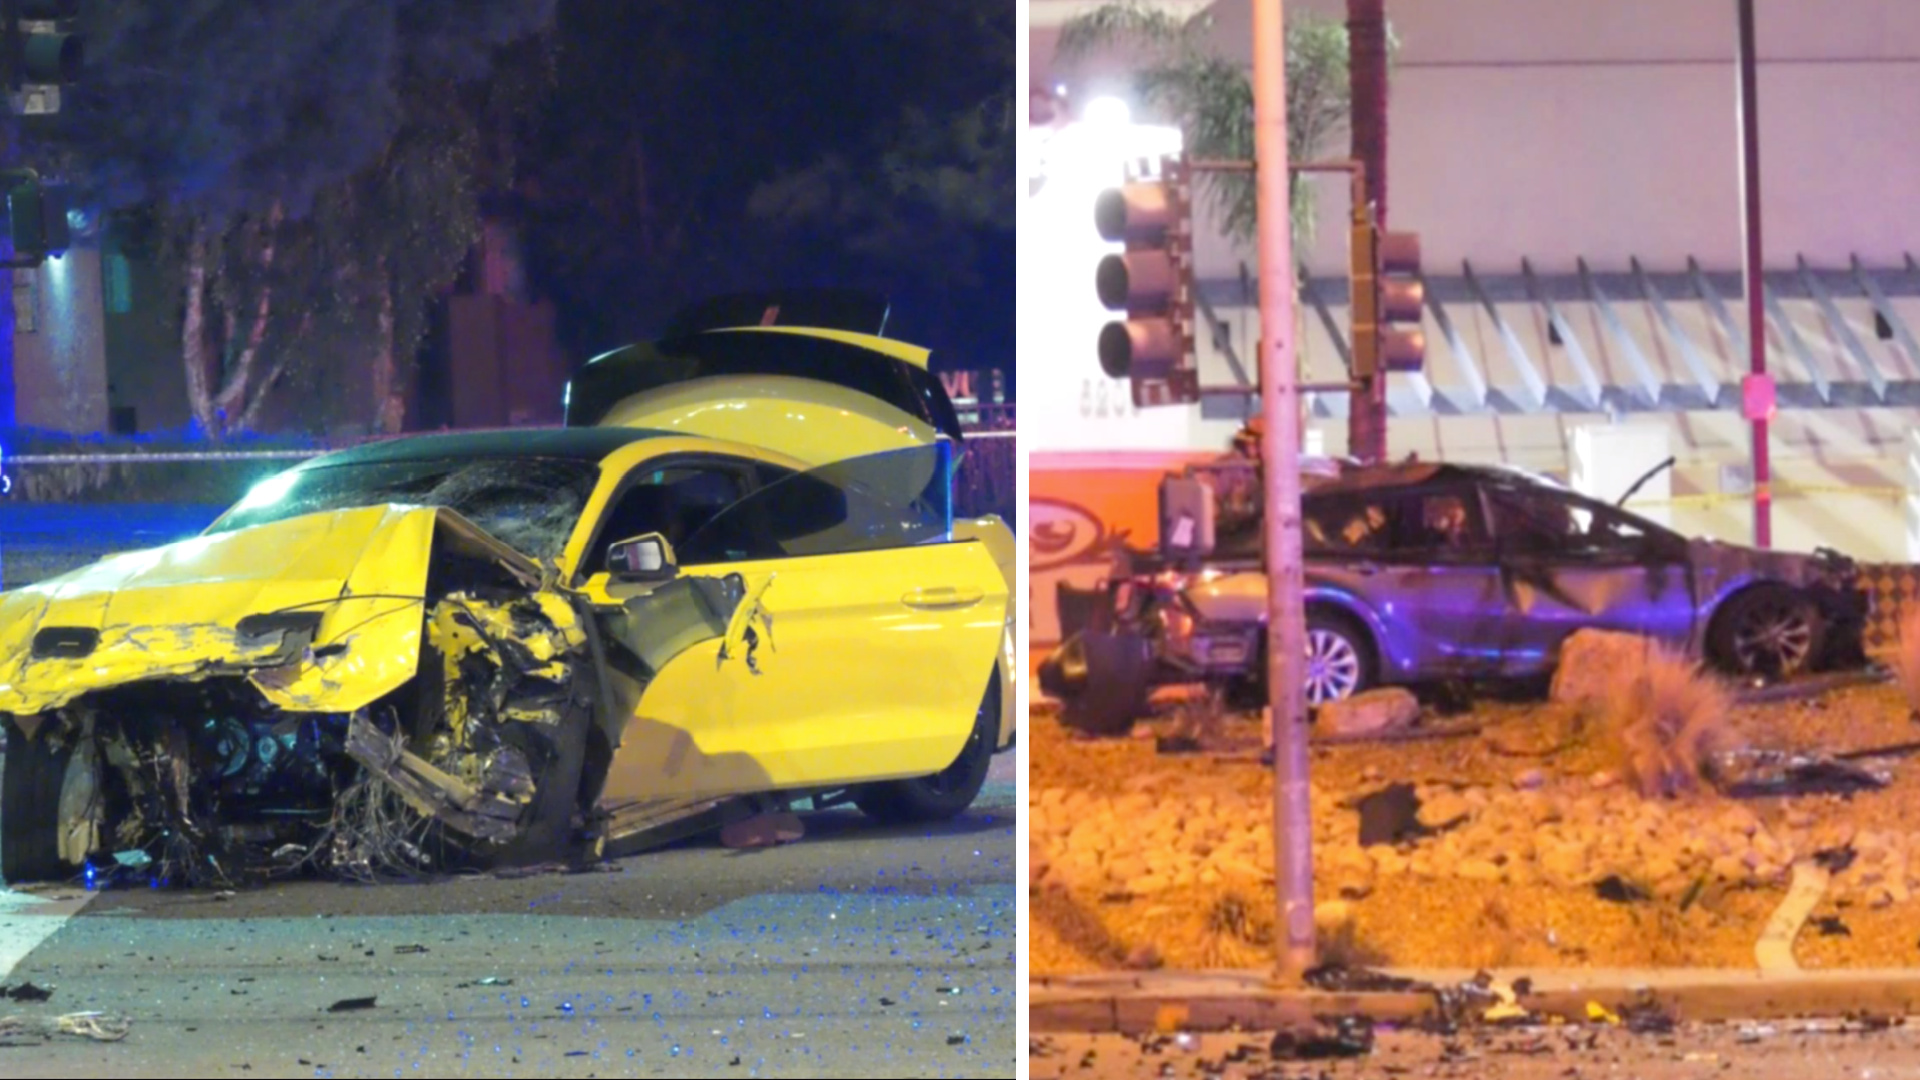 A Mustang and Camry seen after a fatal, fiery crash in San Bernardino on Nov. 27, 2020.(Onscene.TV)